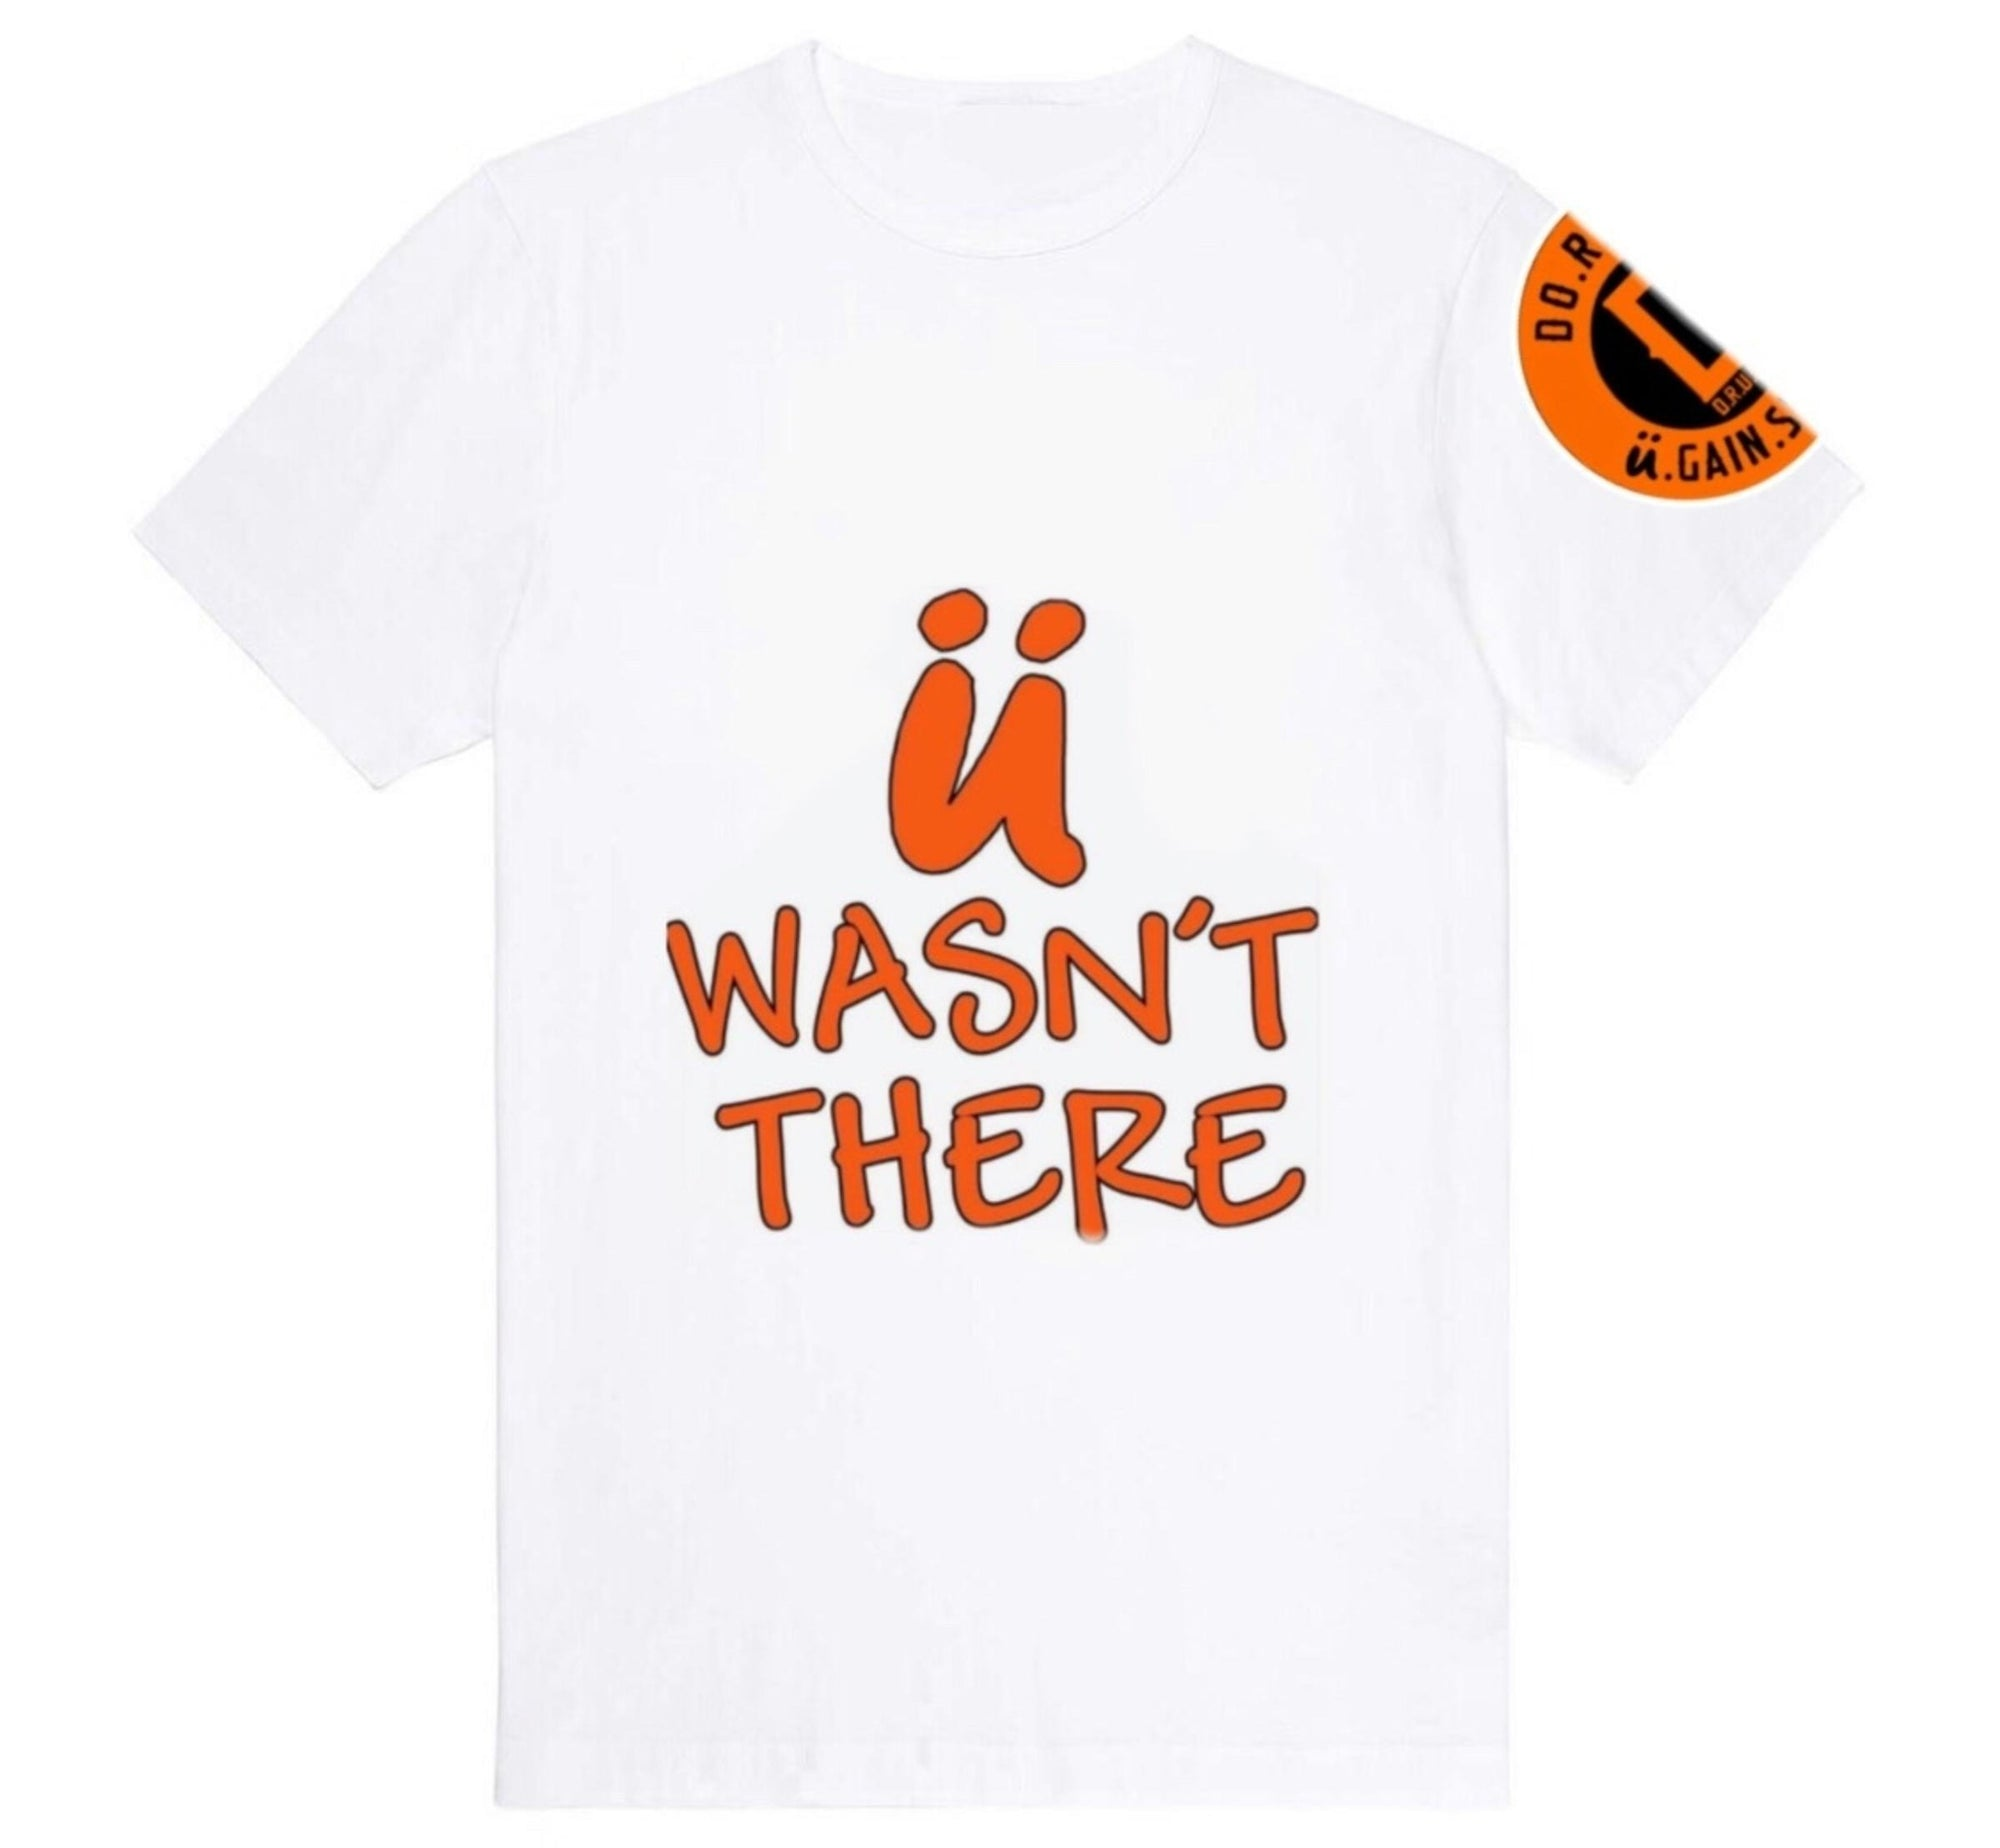 D.R.U.G.S. U Wasn't There Tee - FLY GUYZ